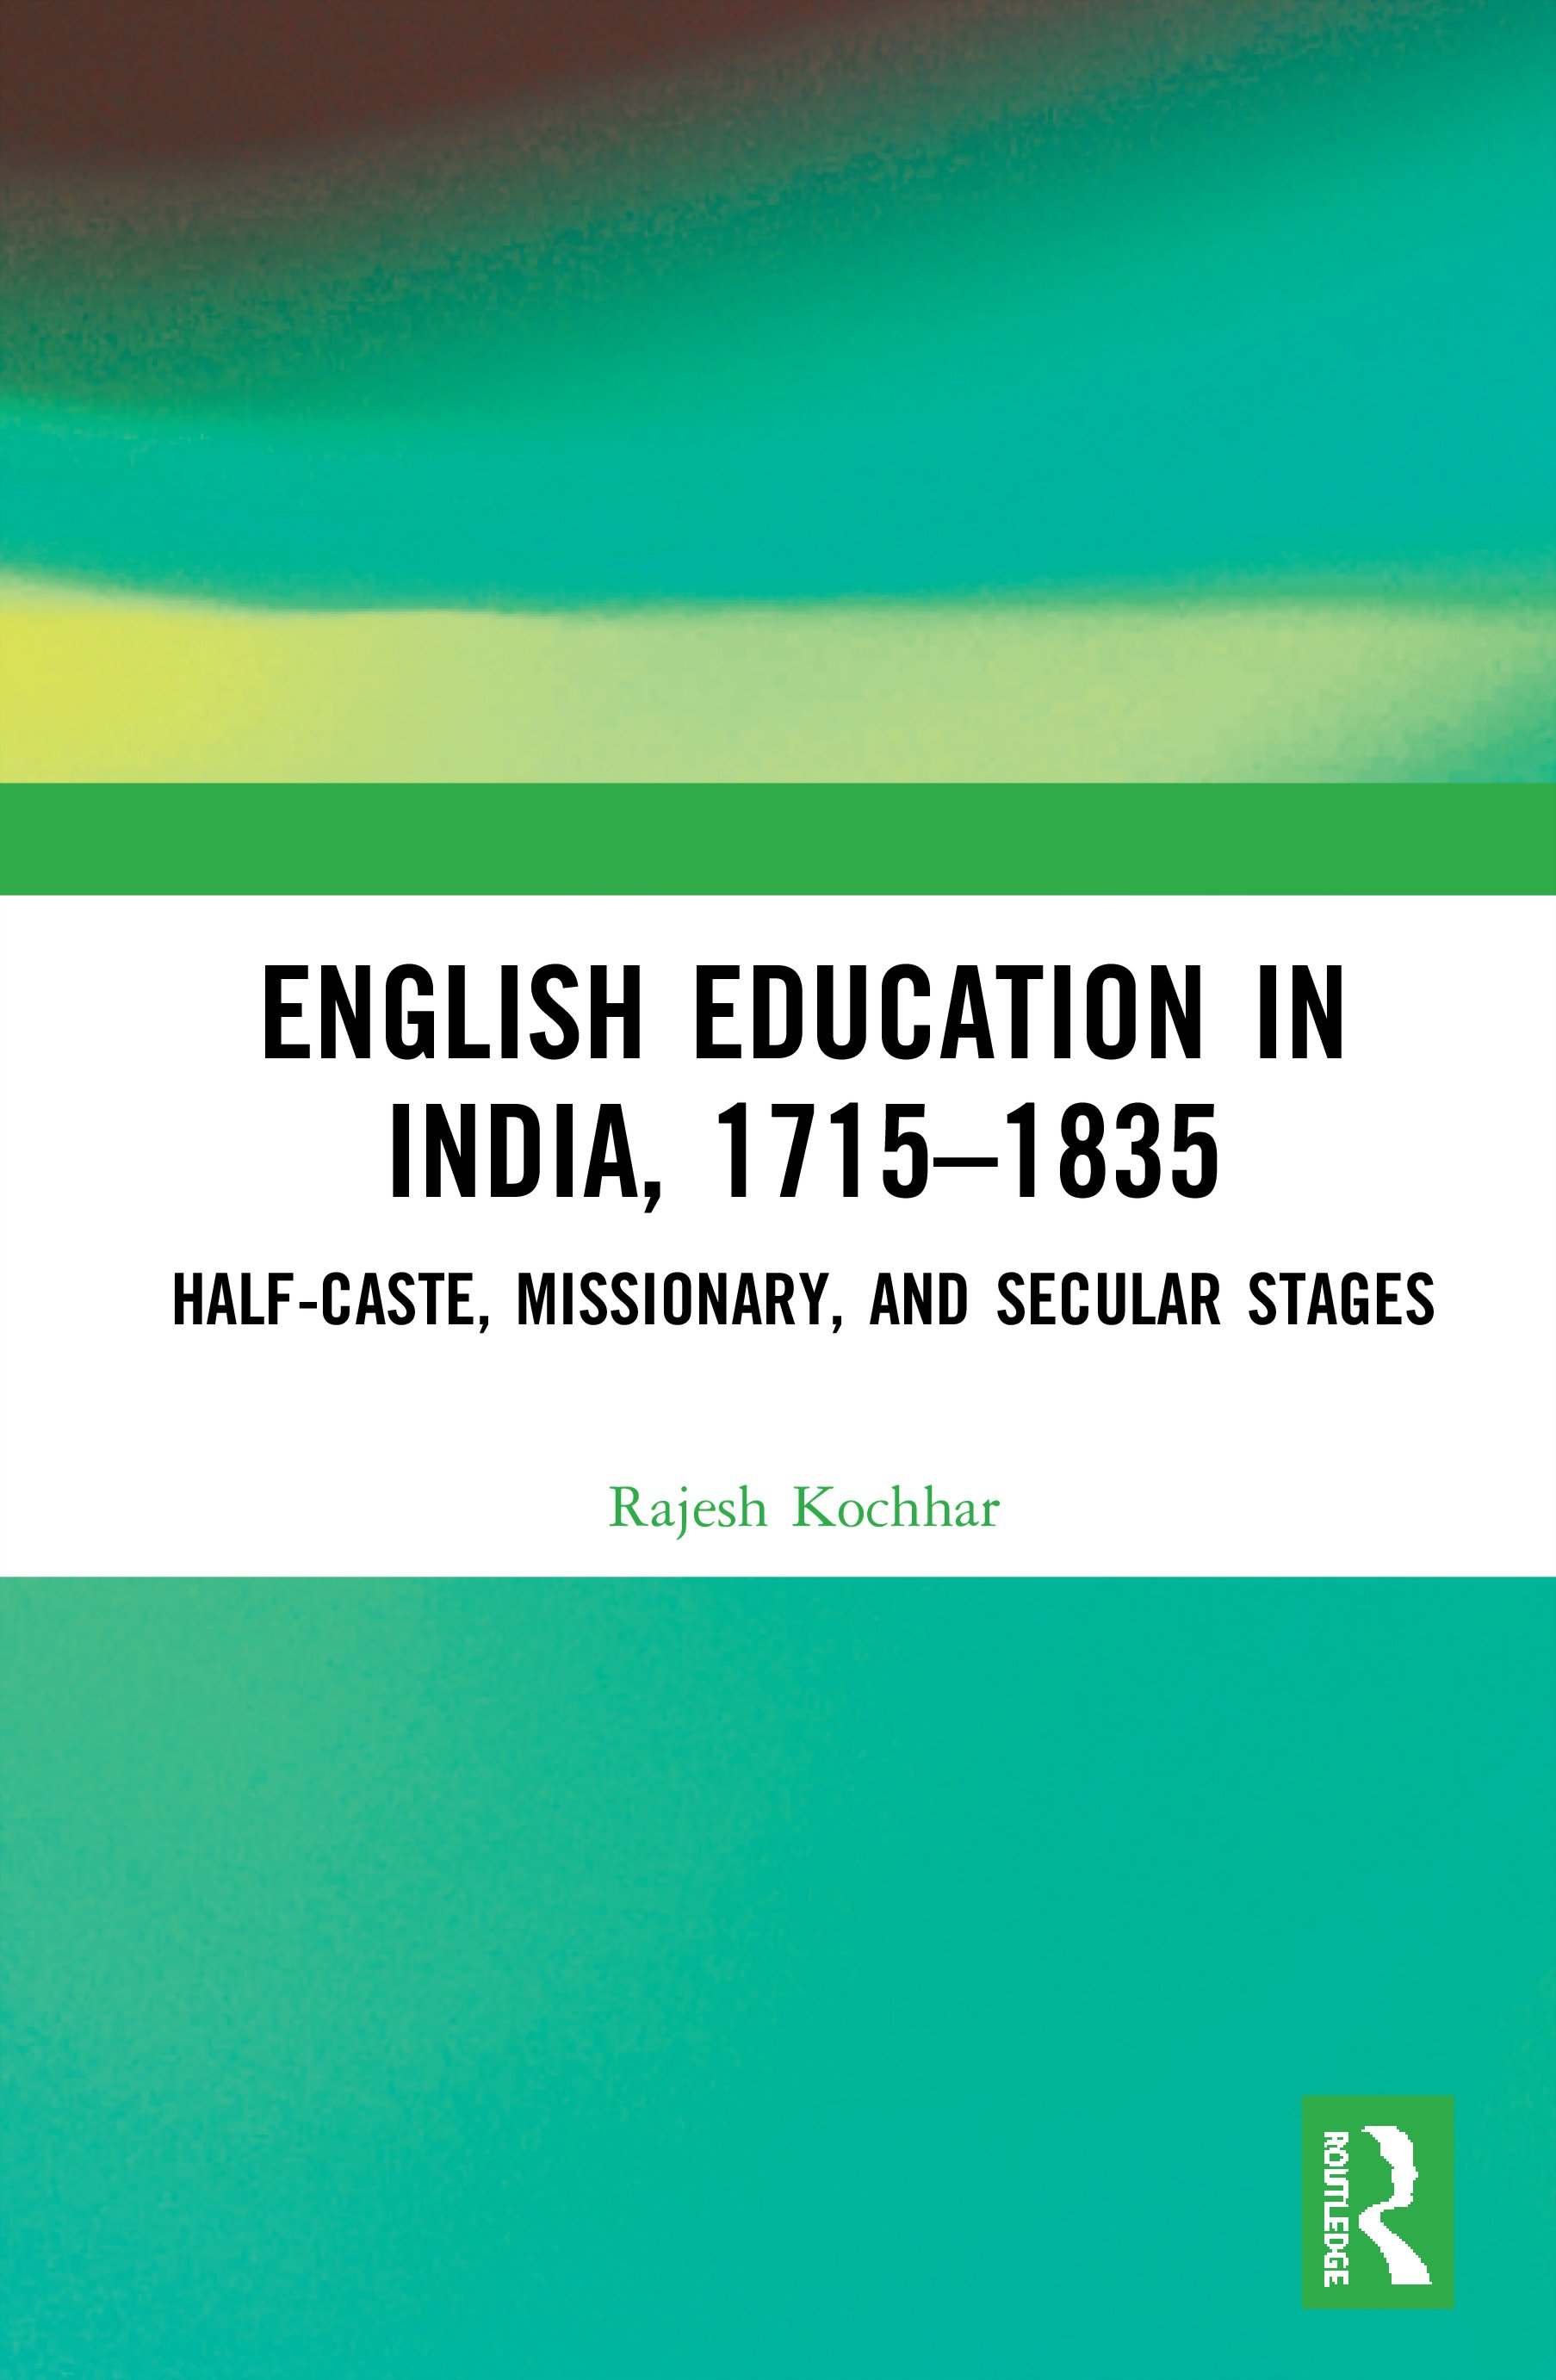 English Education in India, 1715-1835: Half-Caste, Missionary, and Secular Stages book cover